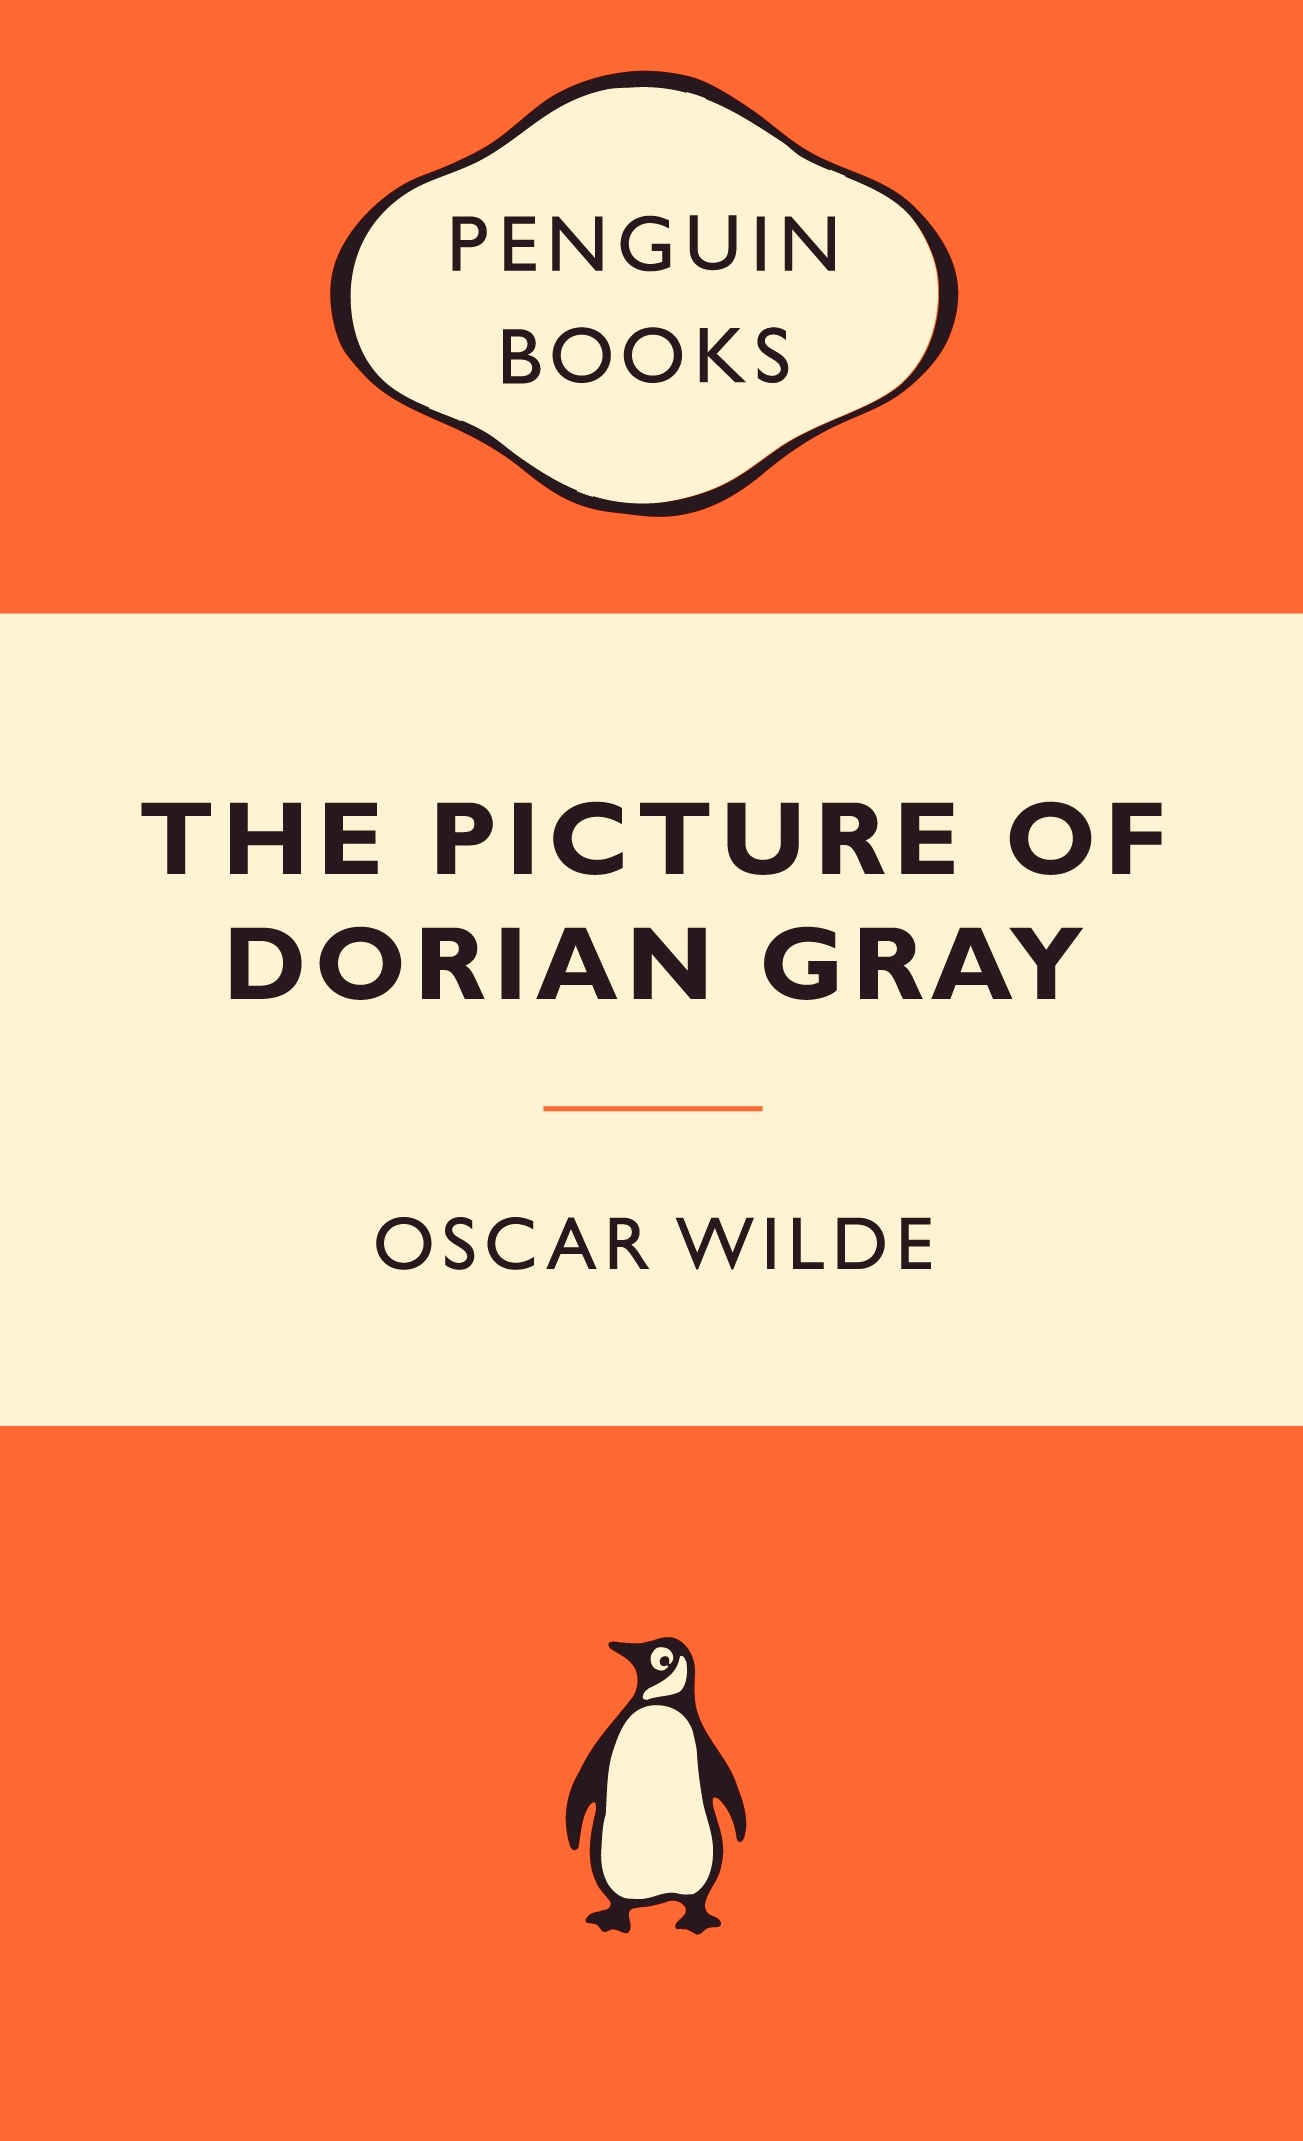 The Picture of Dorian Gray, Penguin edition